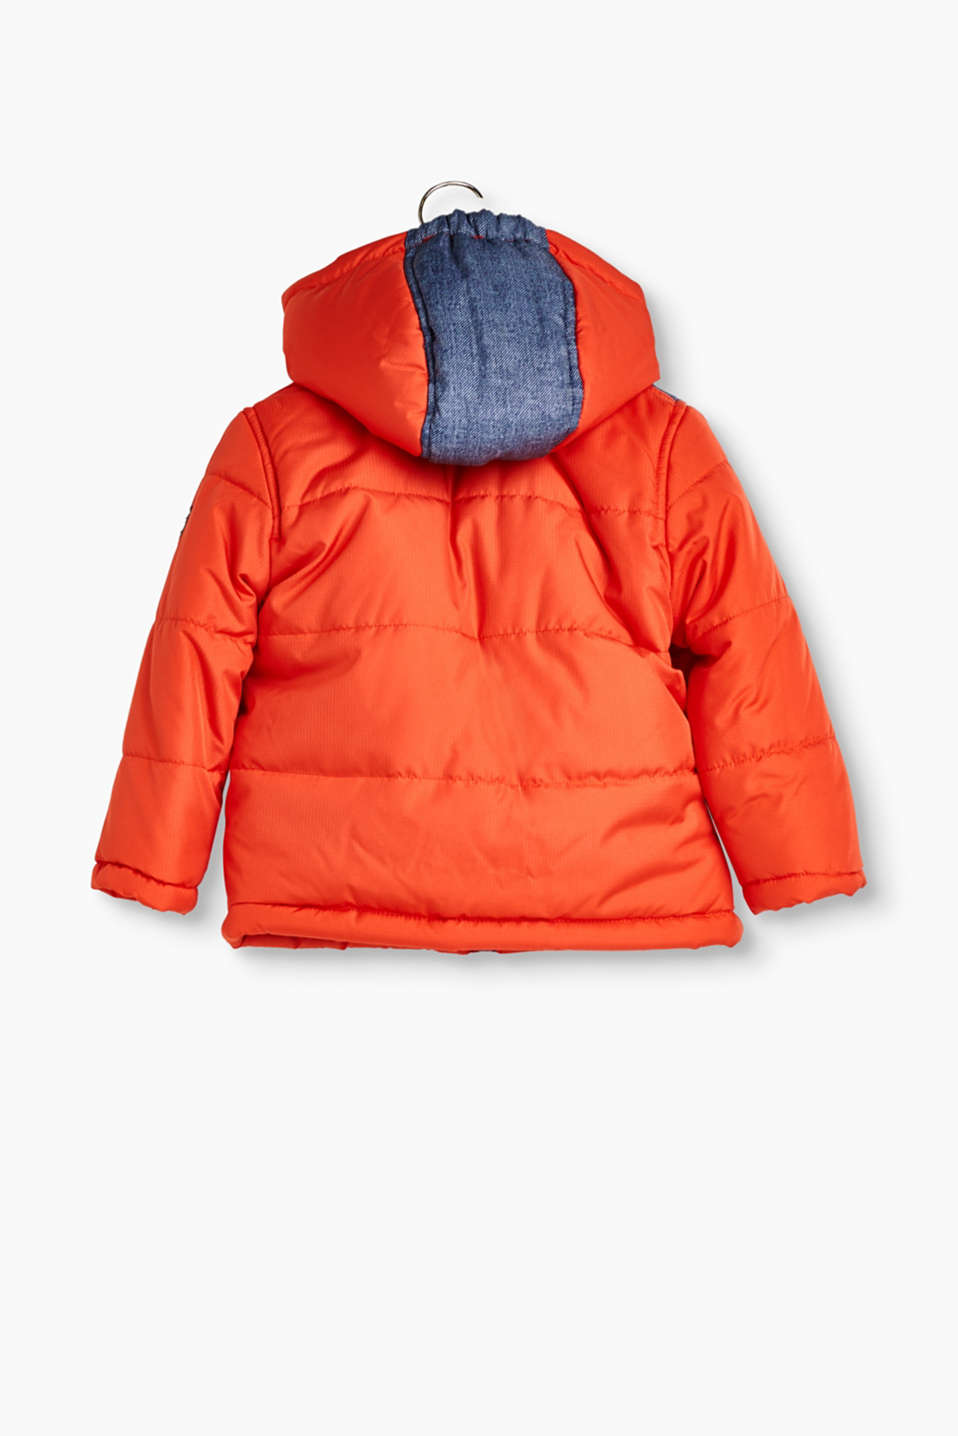 Padded jacket with a detachable hood